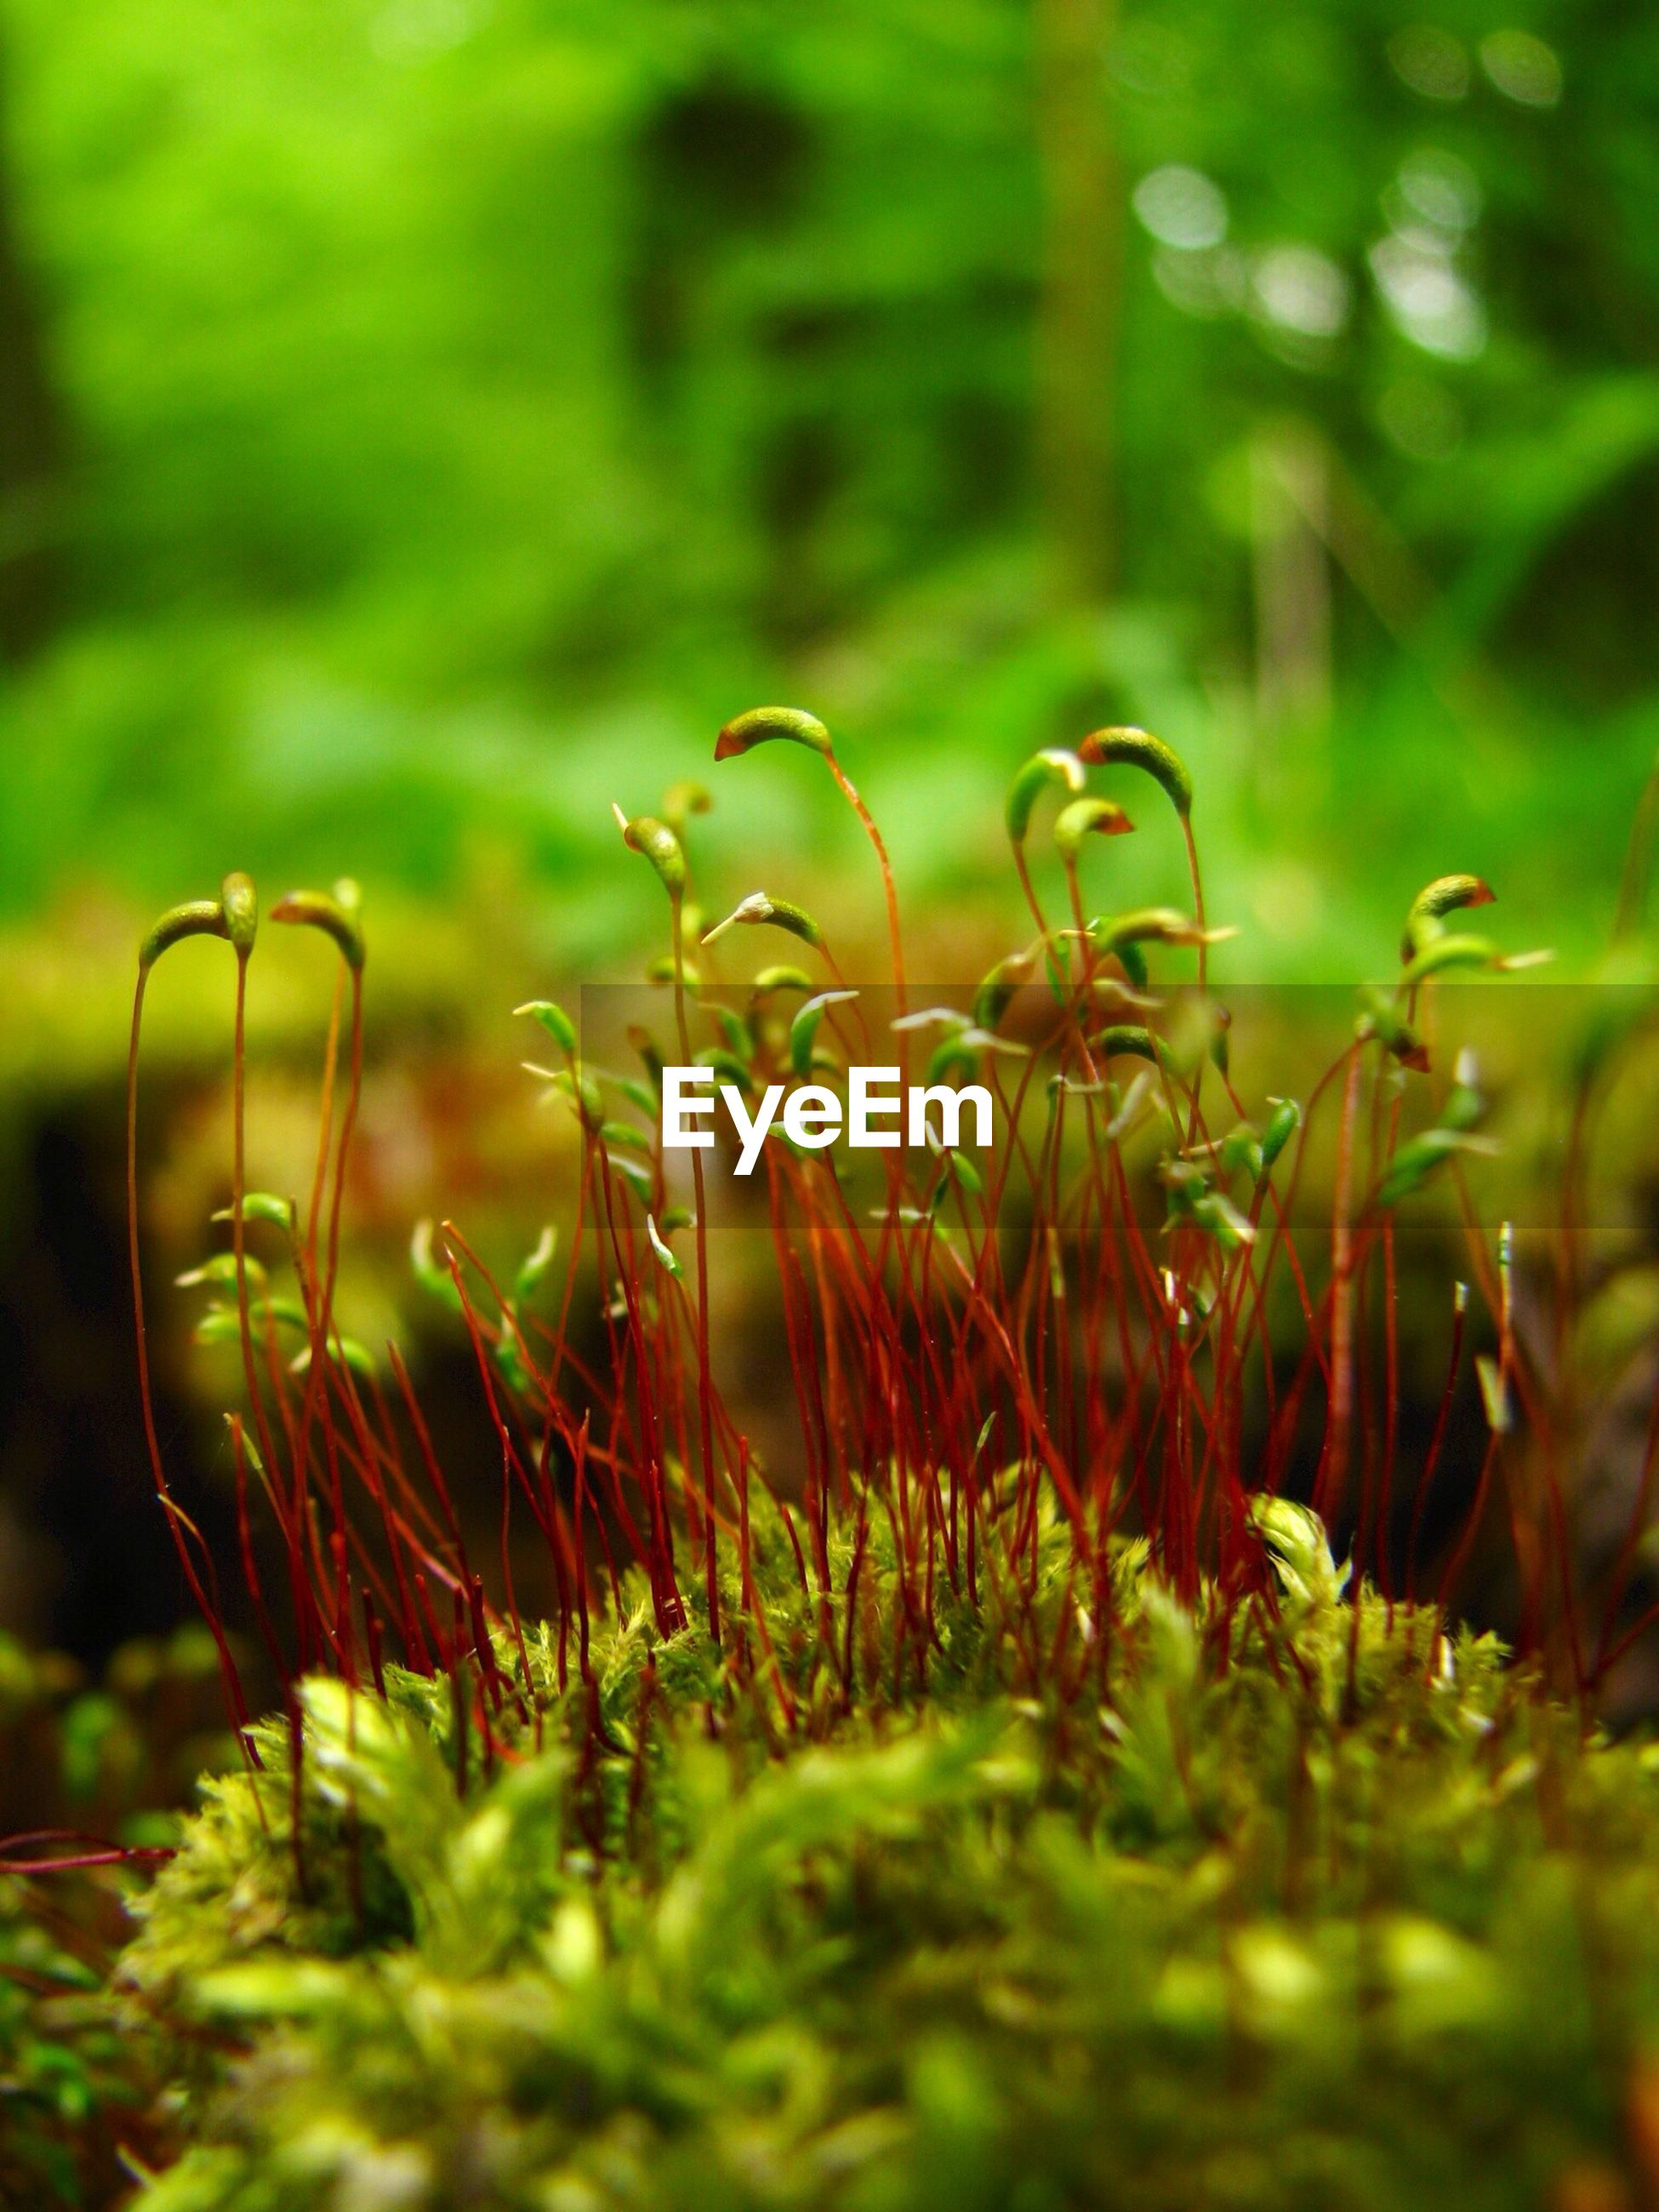 growth, plant, close-up, focus on foreground, flower, selective focus, freshness, nature, beauty in nature, field, grass, green color, fragility, bud, stem, growing, day, outdoors, no people, beginnings